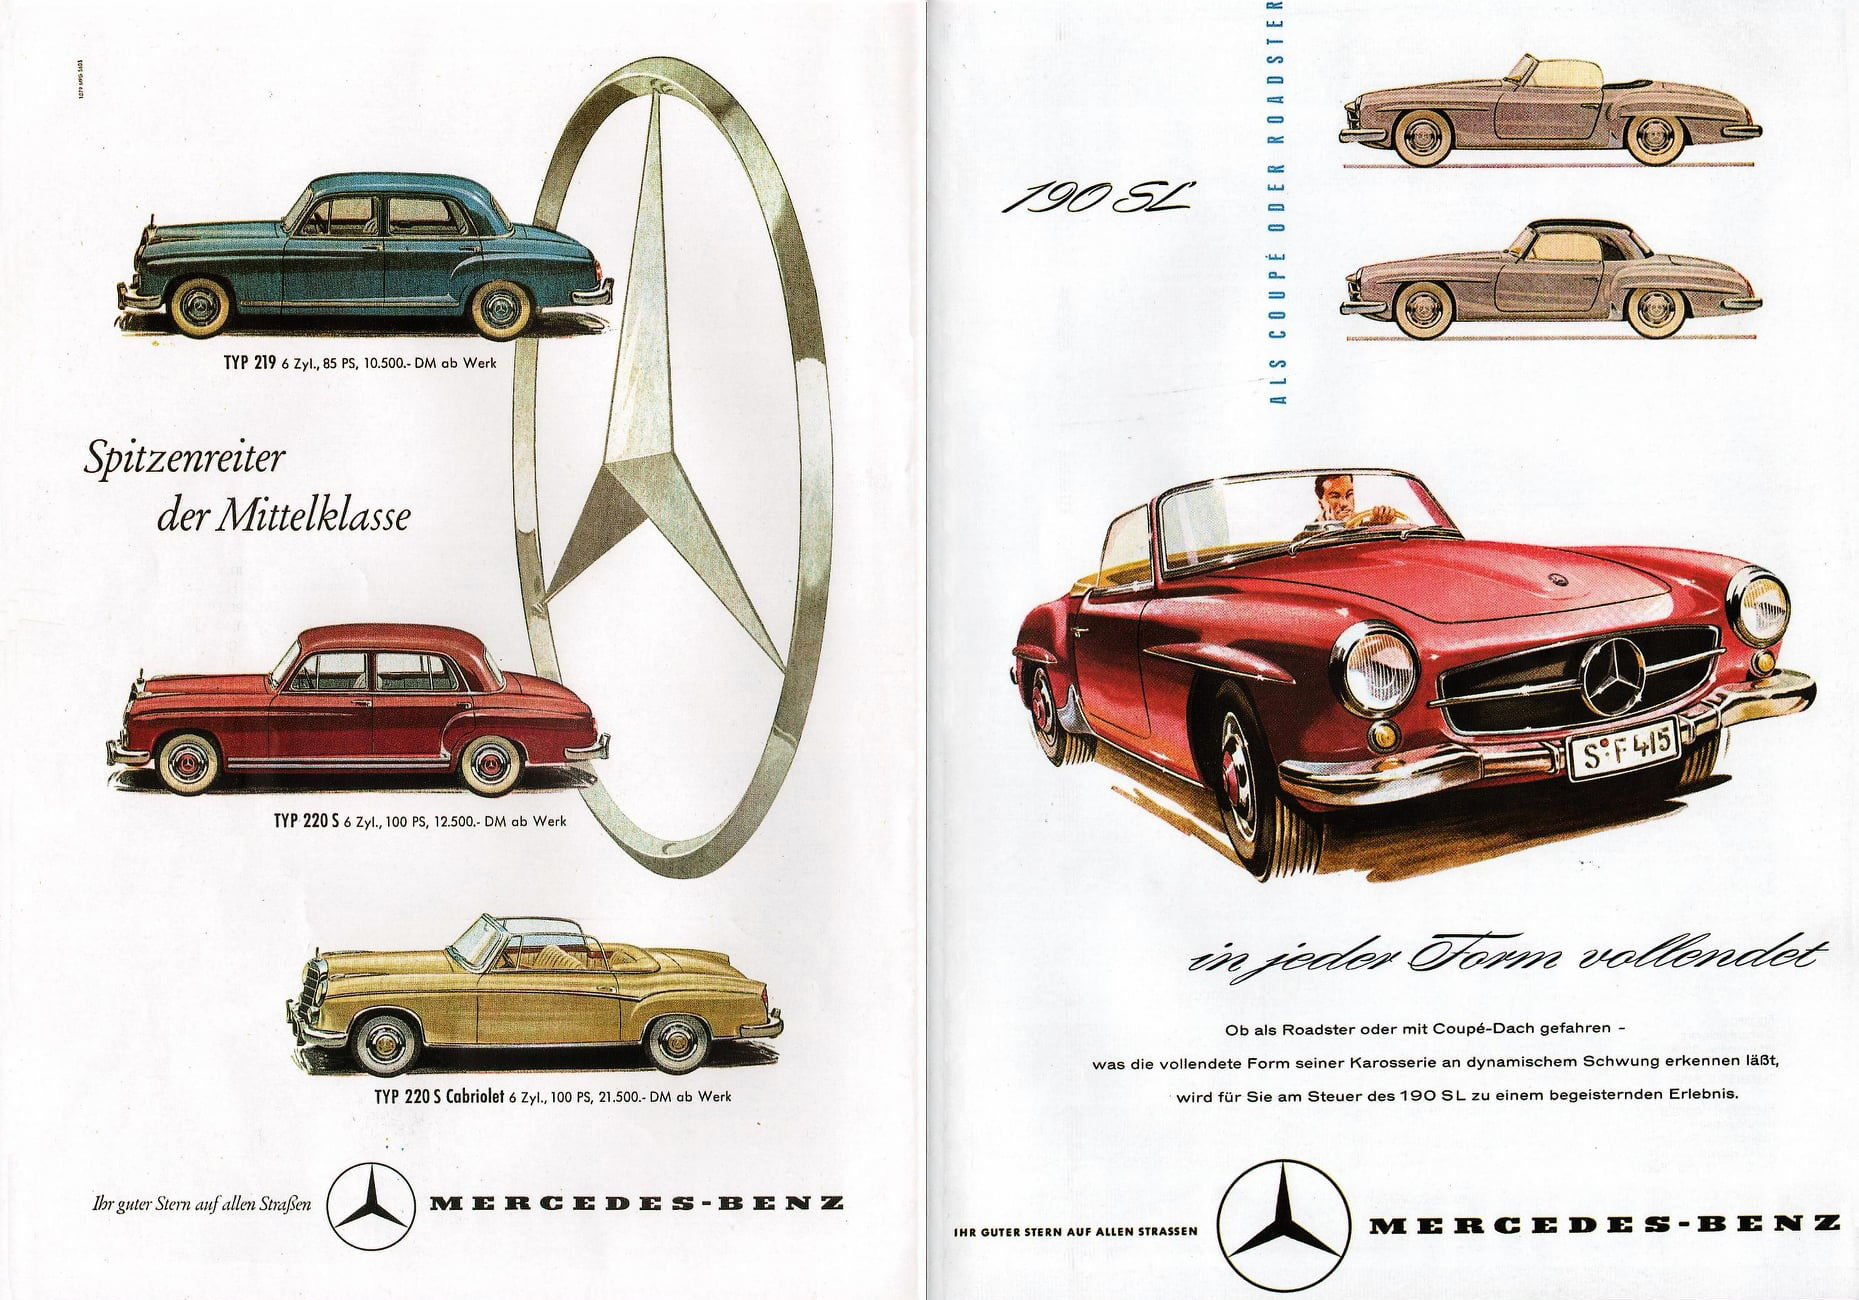 Mercedes-Benz models during the 50ies © Daimler AG